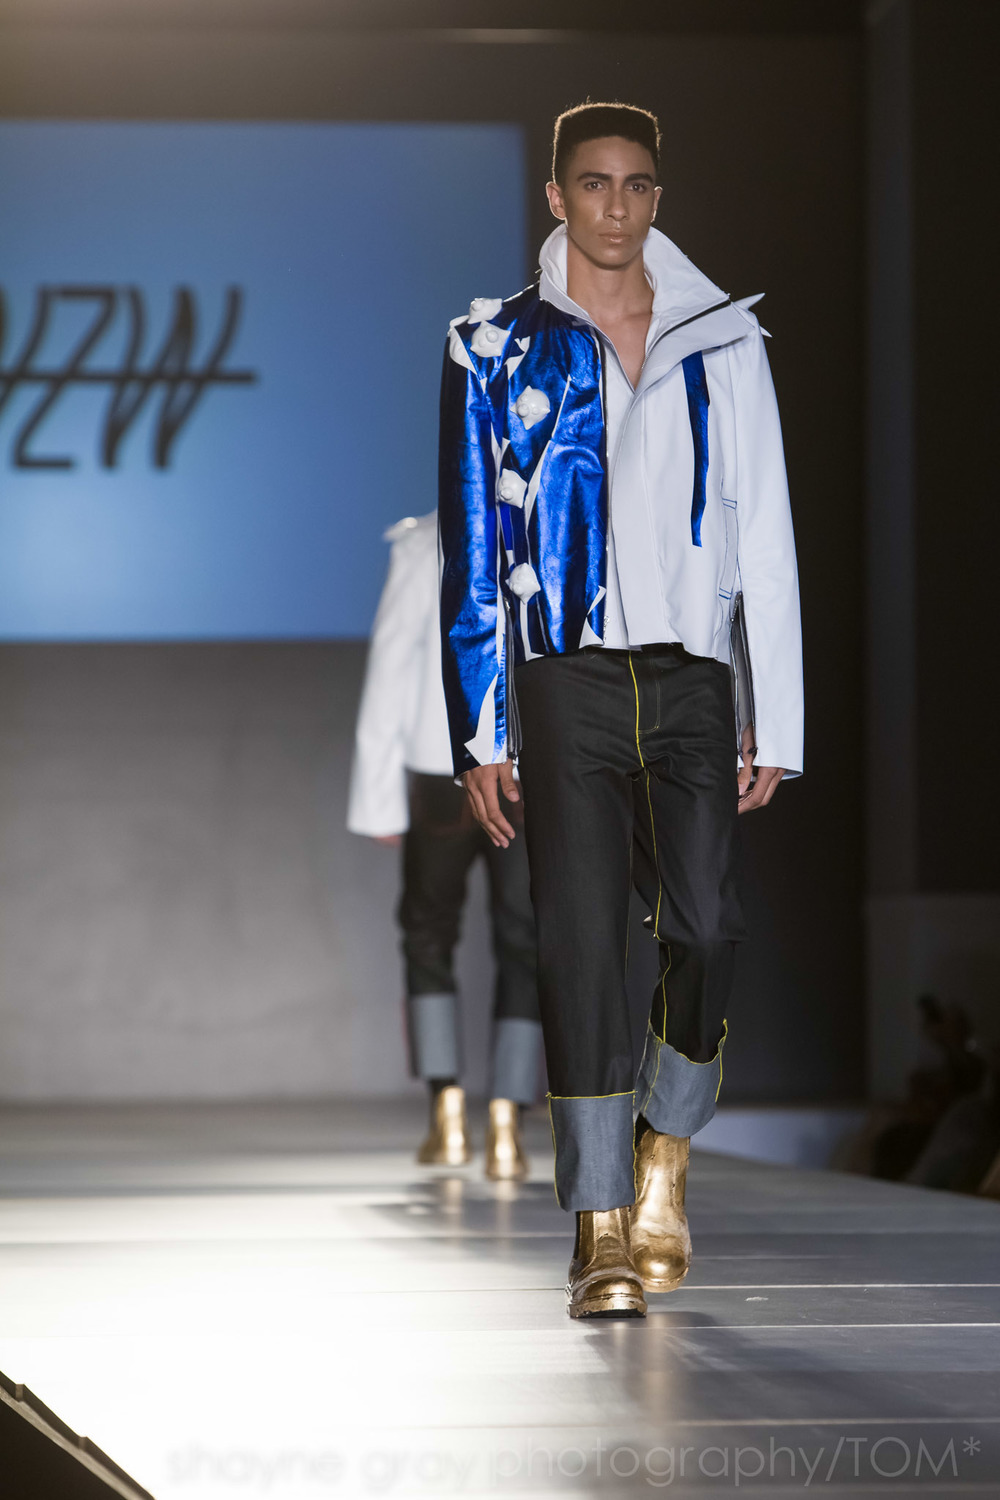 Shayne-Gray-Toronto-men's-fashion_week-TOM-benji-wzw-6988.jpg